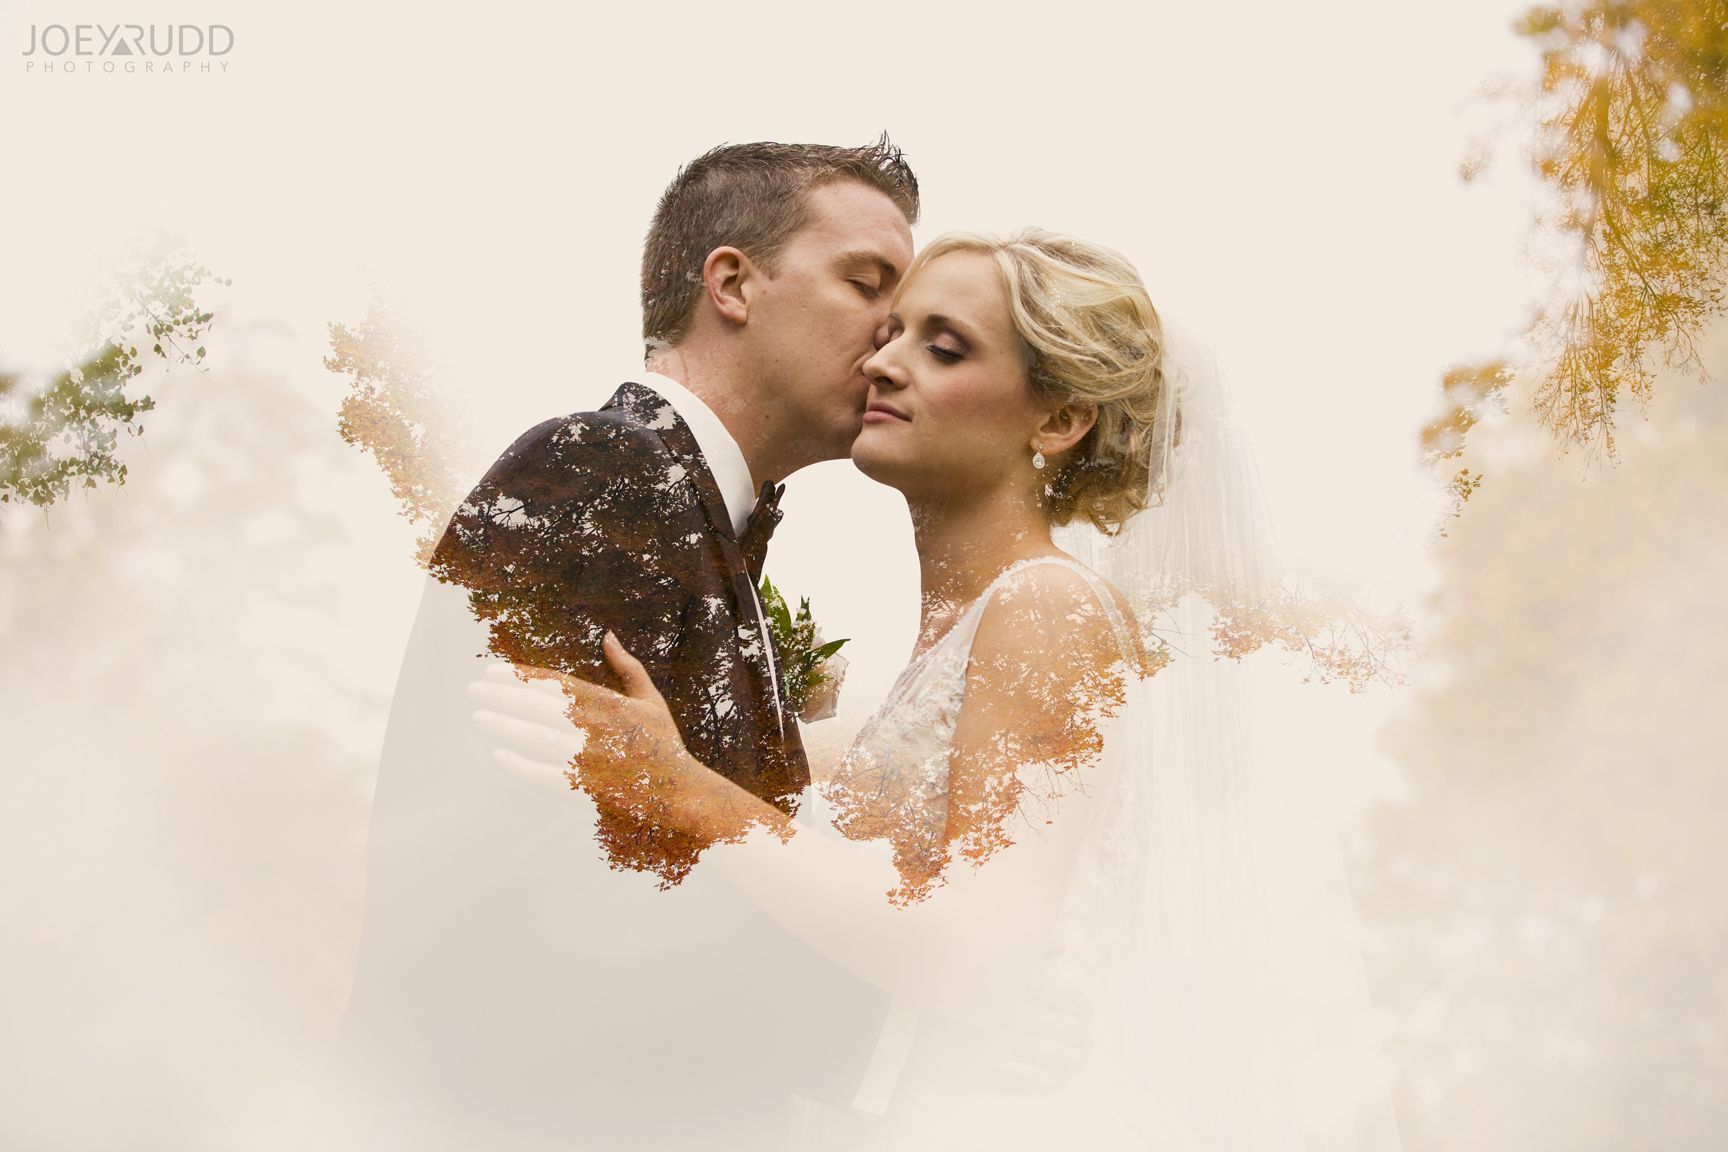 Double Exposure Photo by Joey Rudd Photography Award Winning Ottawa Wedding Photographer